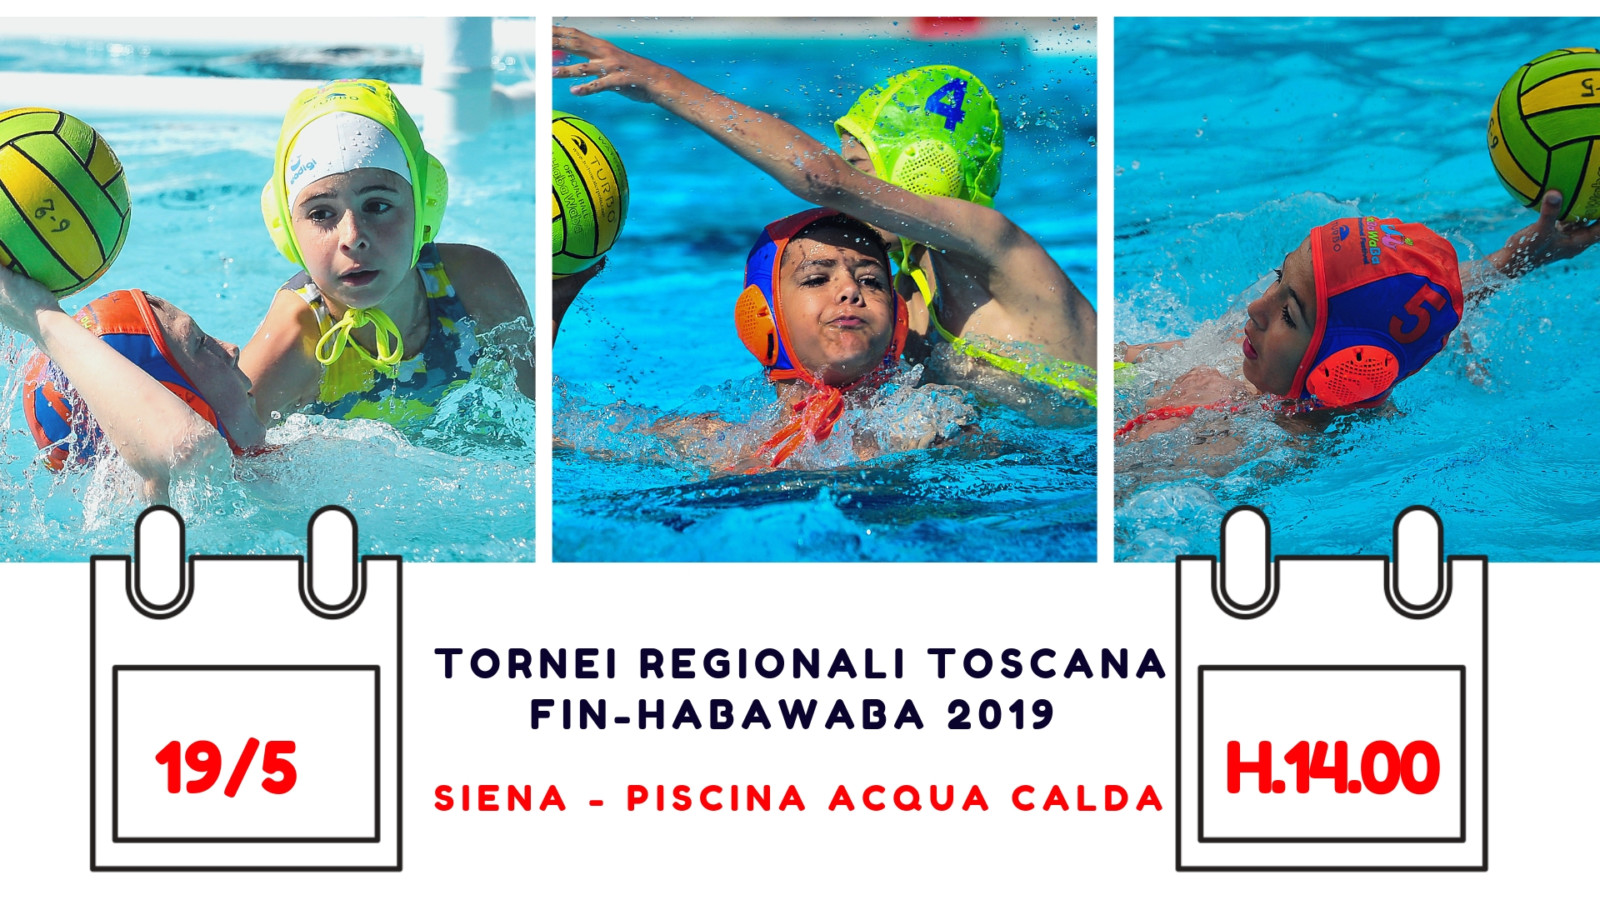 Copy of tornei regionali TOSCANA fin-habawaba 2019 day 2